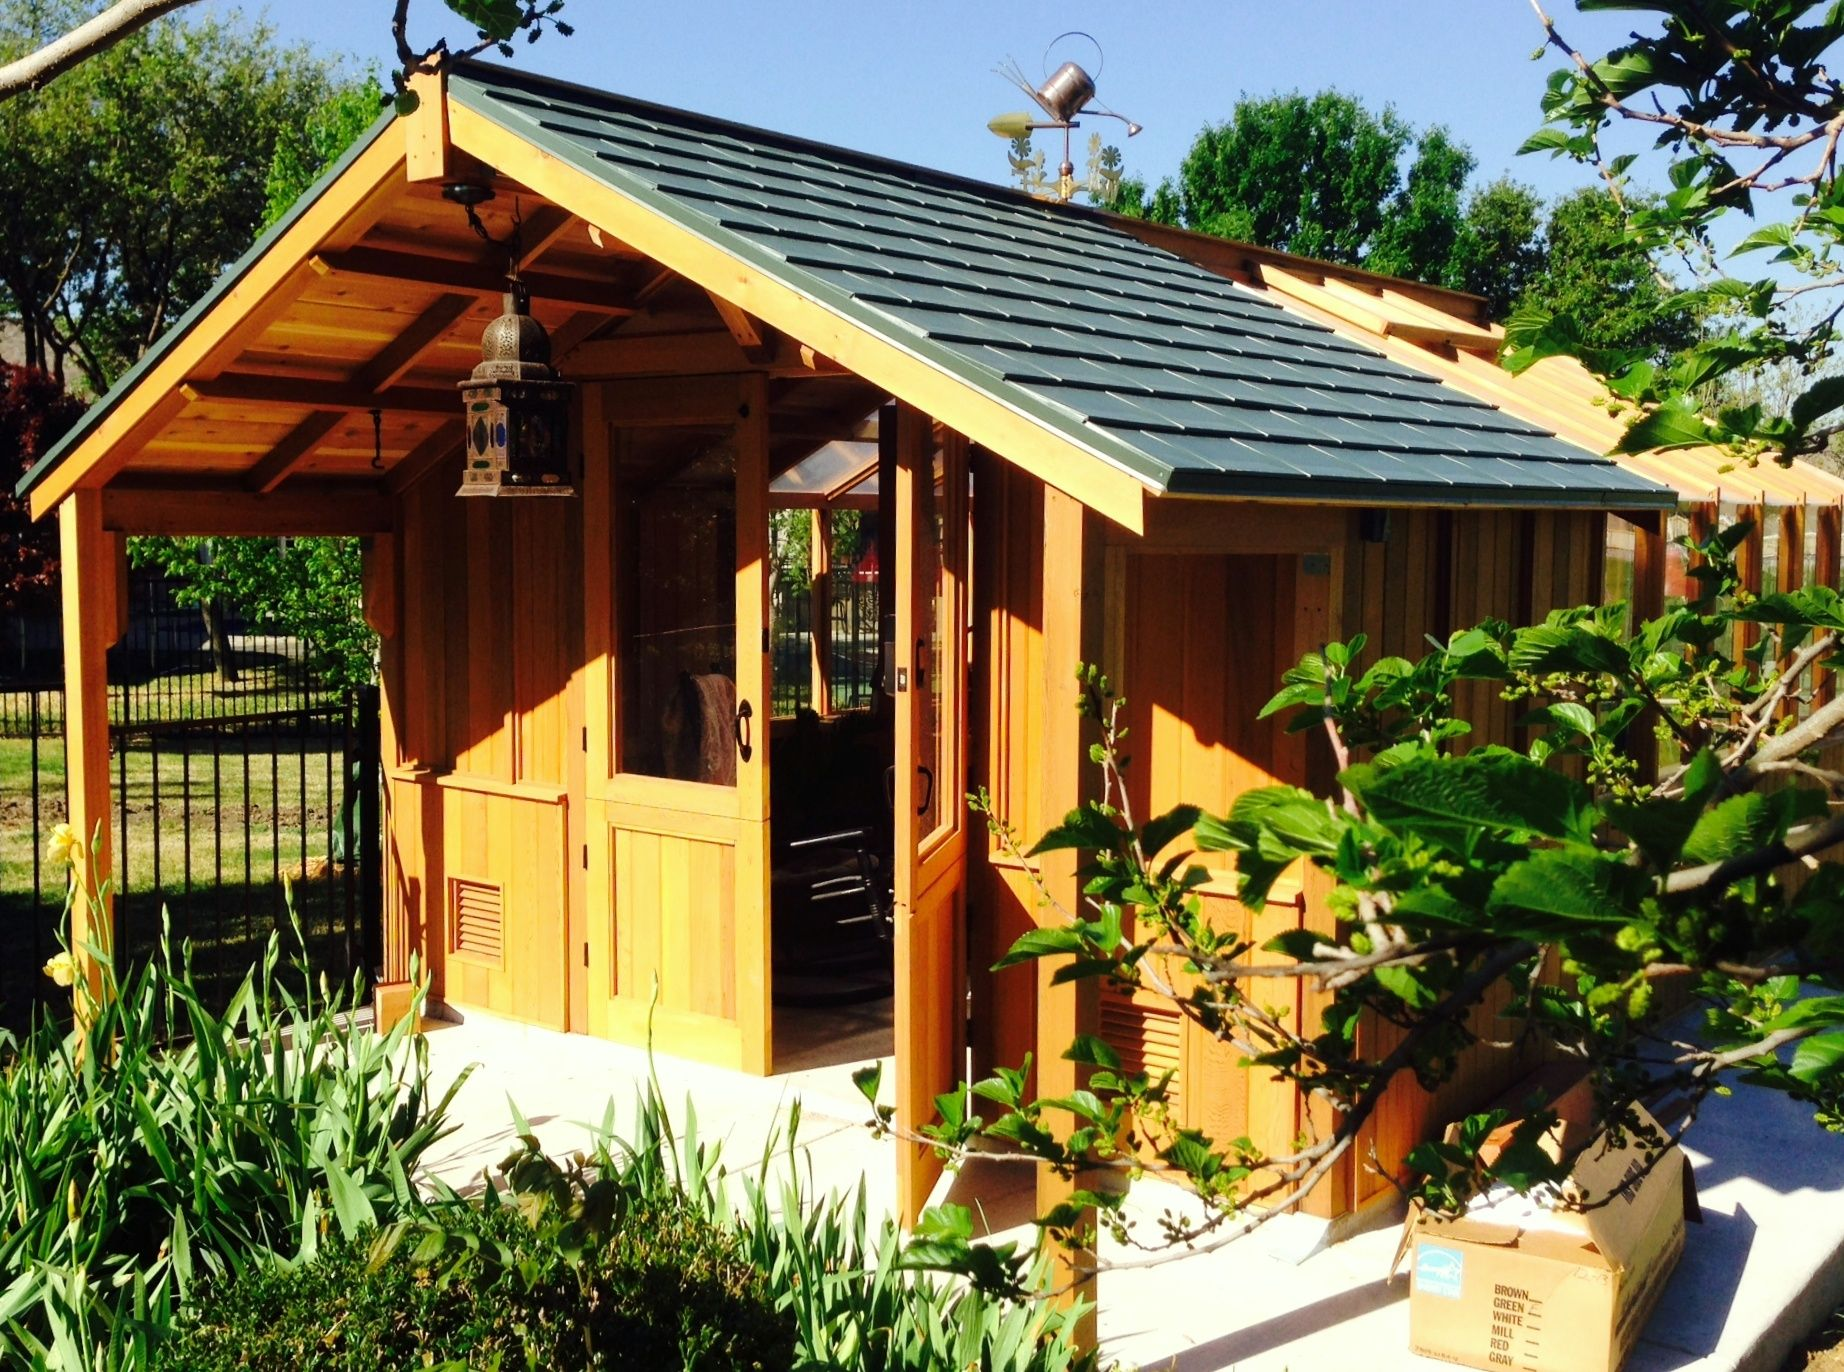 Stylish Garden Shed Greenhouse: Impressive Garden Shed Greenhouse Cedar Kits